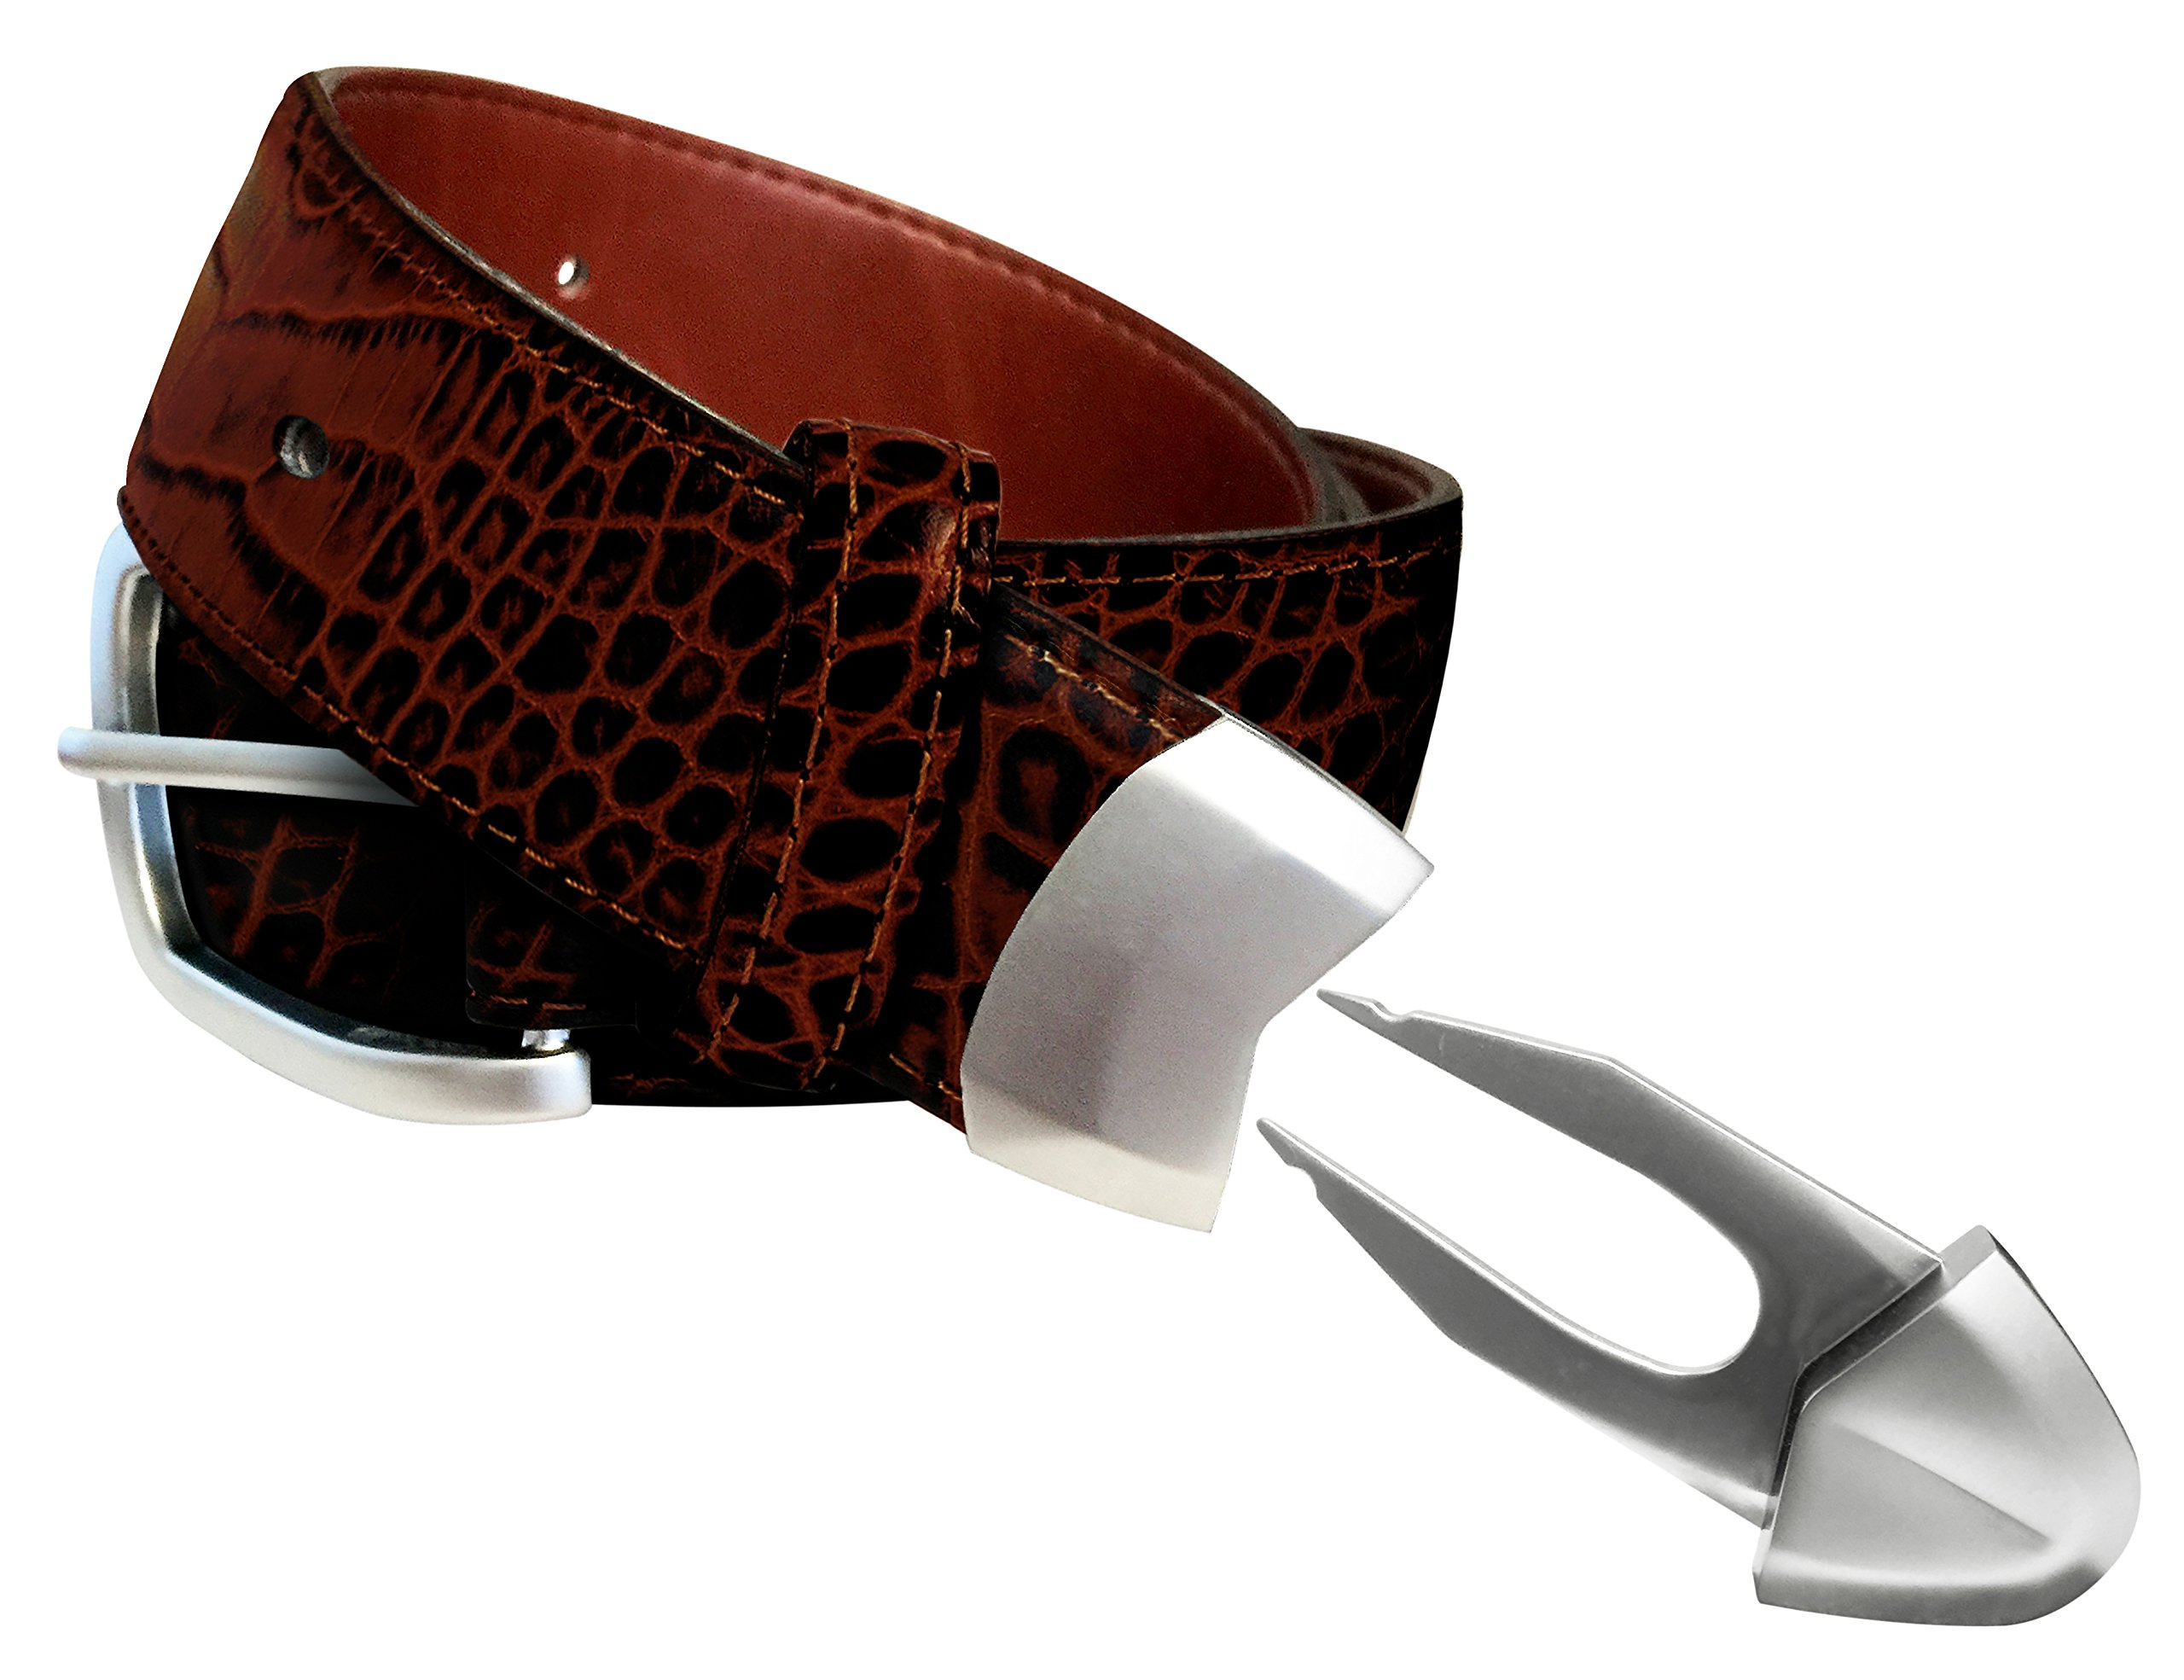 Leather Golf belt, built-in divot tool and ball marker in tip, KenRick Golf, Brown Croc, size 38''